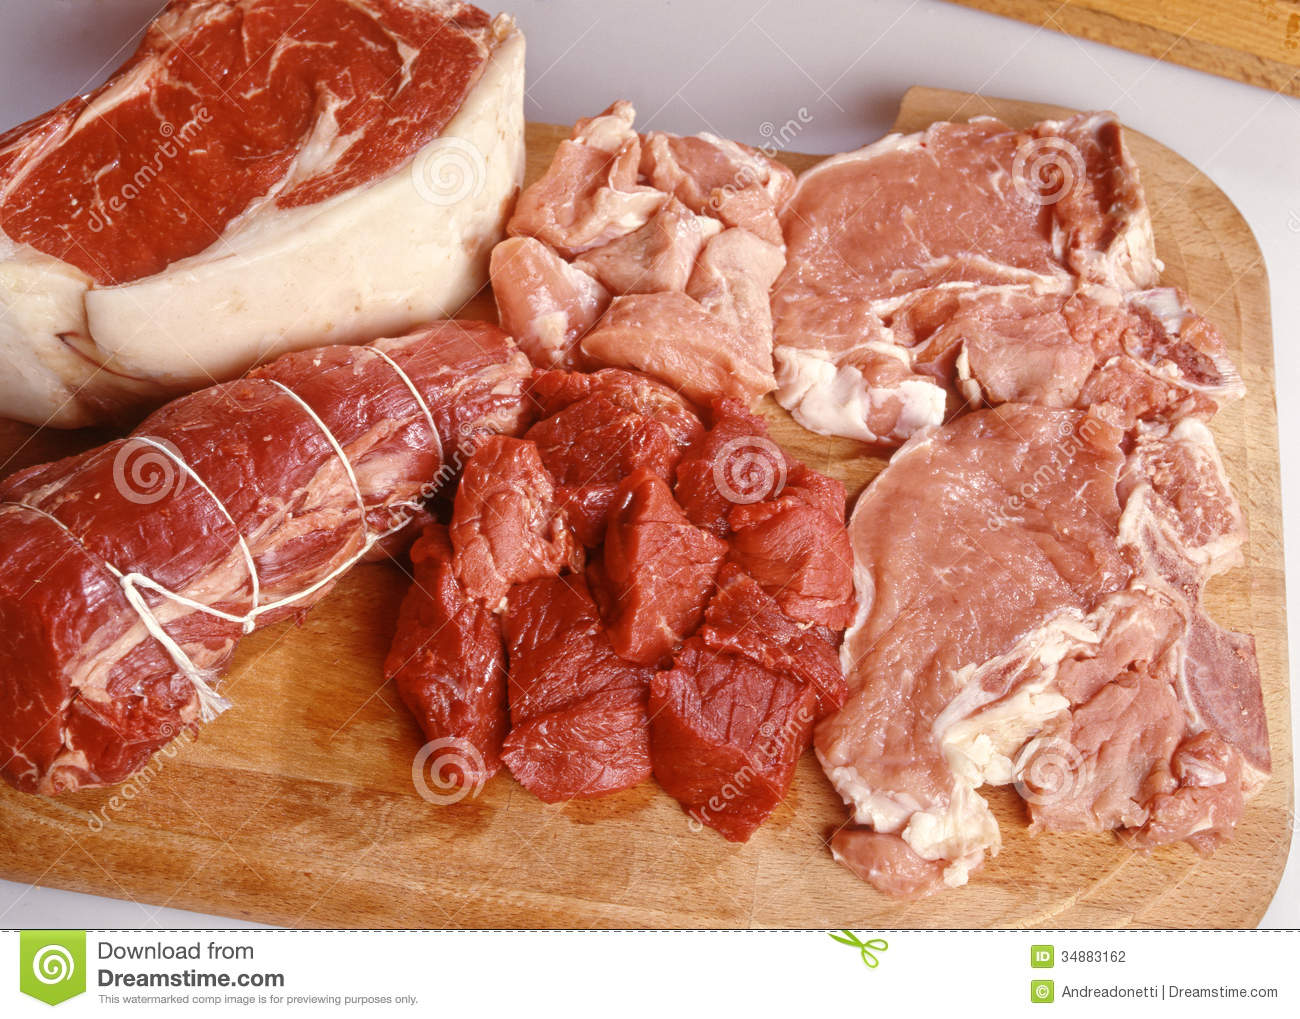 how to choose pork meat